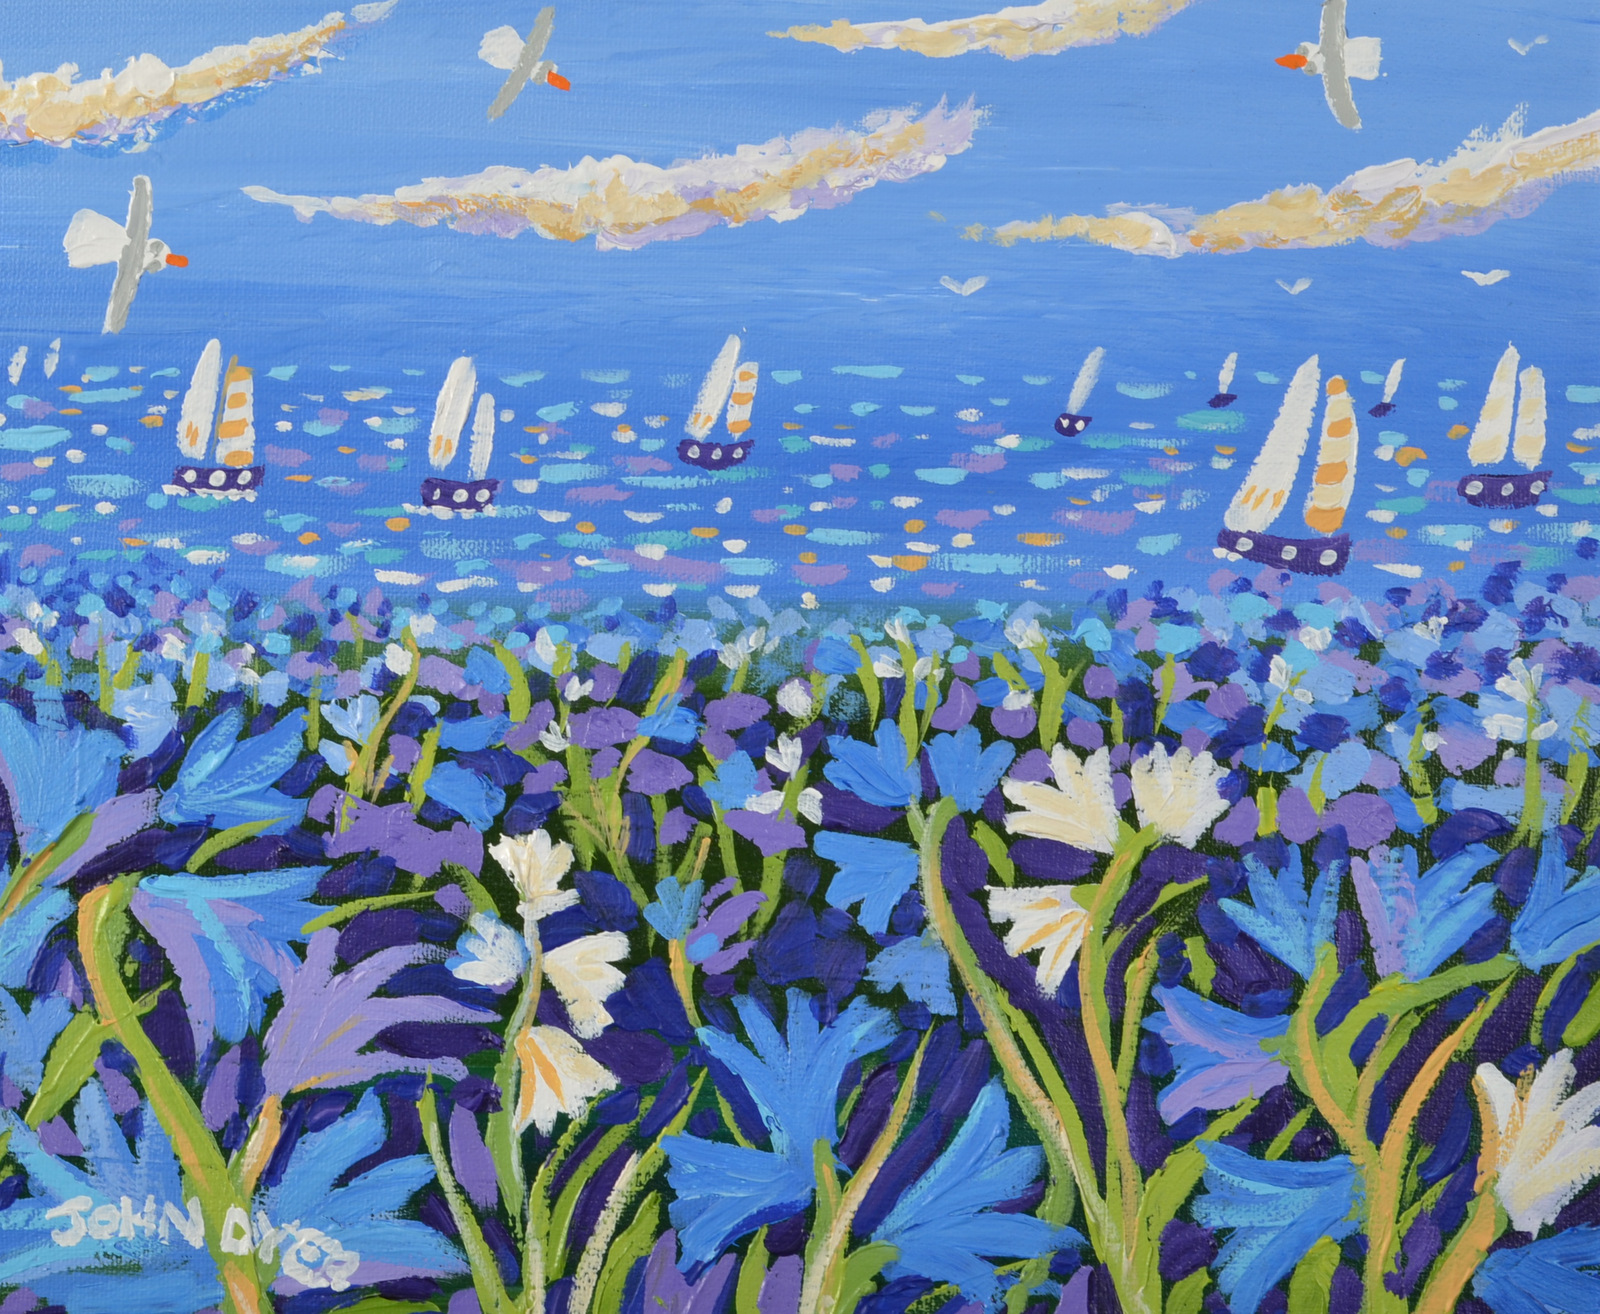 Lot 22 - JOHN DYER Spring Sailing Oil on canvas Signed Dated on the back 25 x 30cm